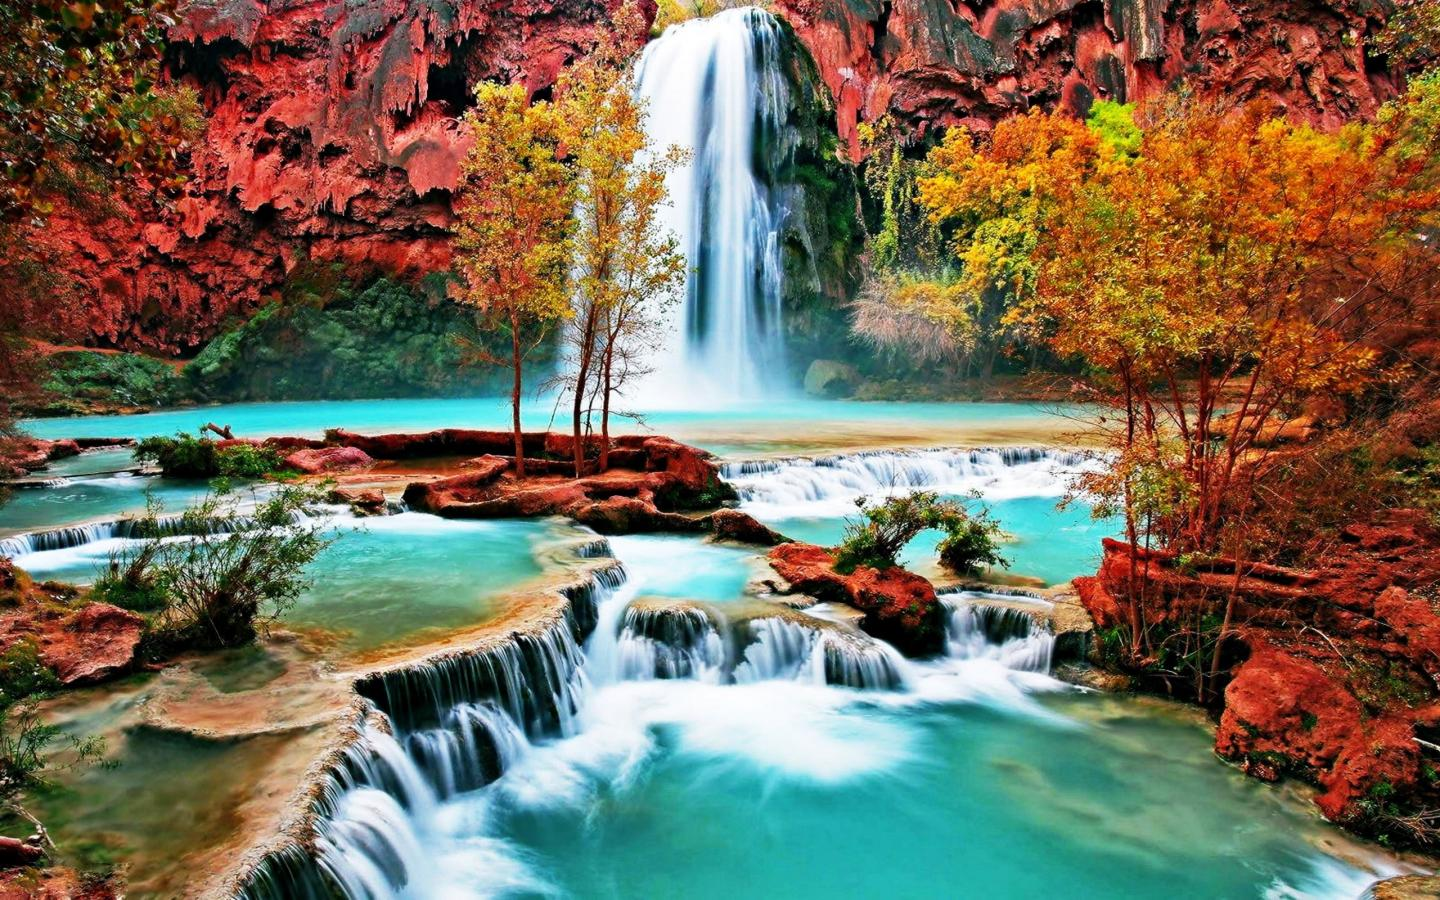 Wonderful Nature Hd Wallpaper: Beautiful Nature Wallpaper With Waterfall In Autumn Forest